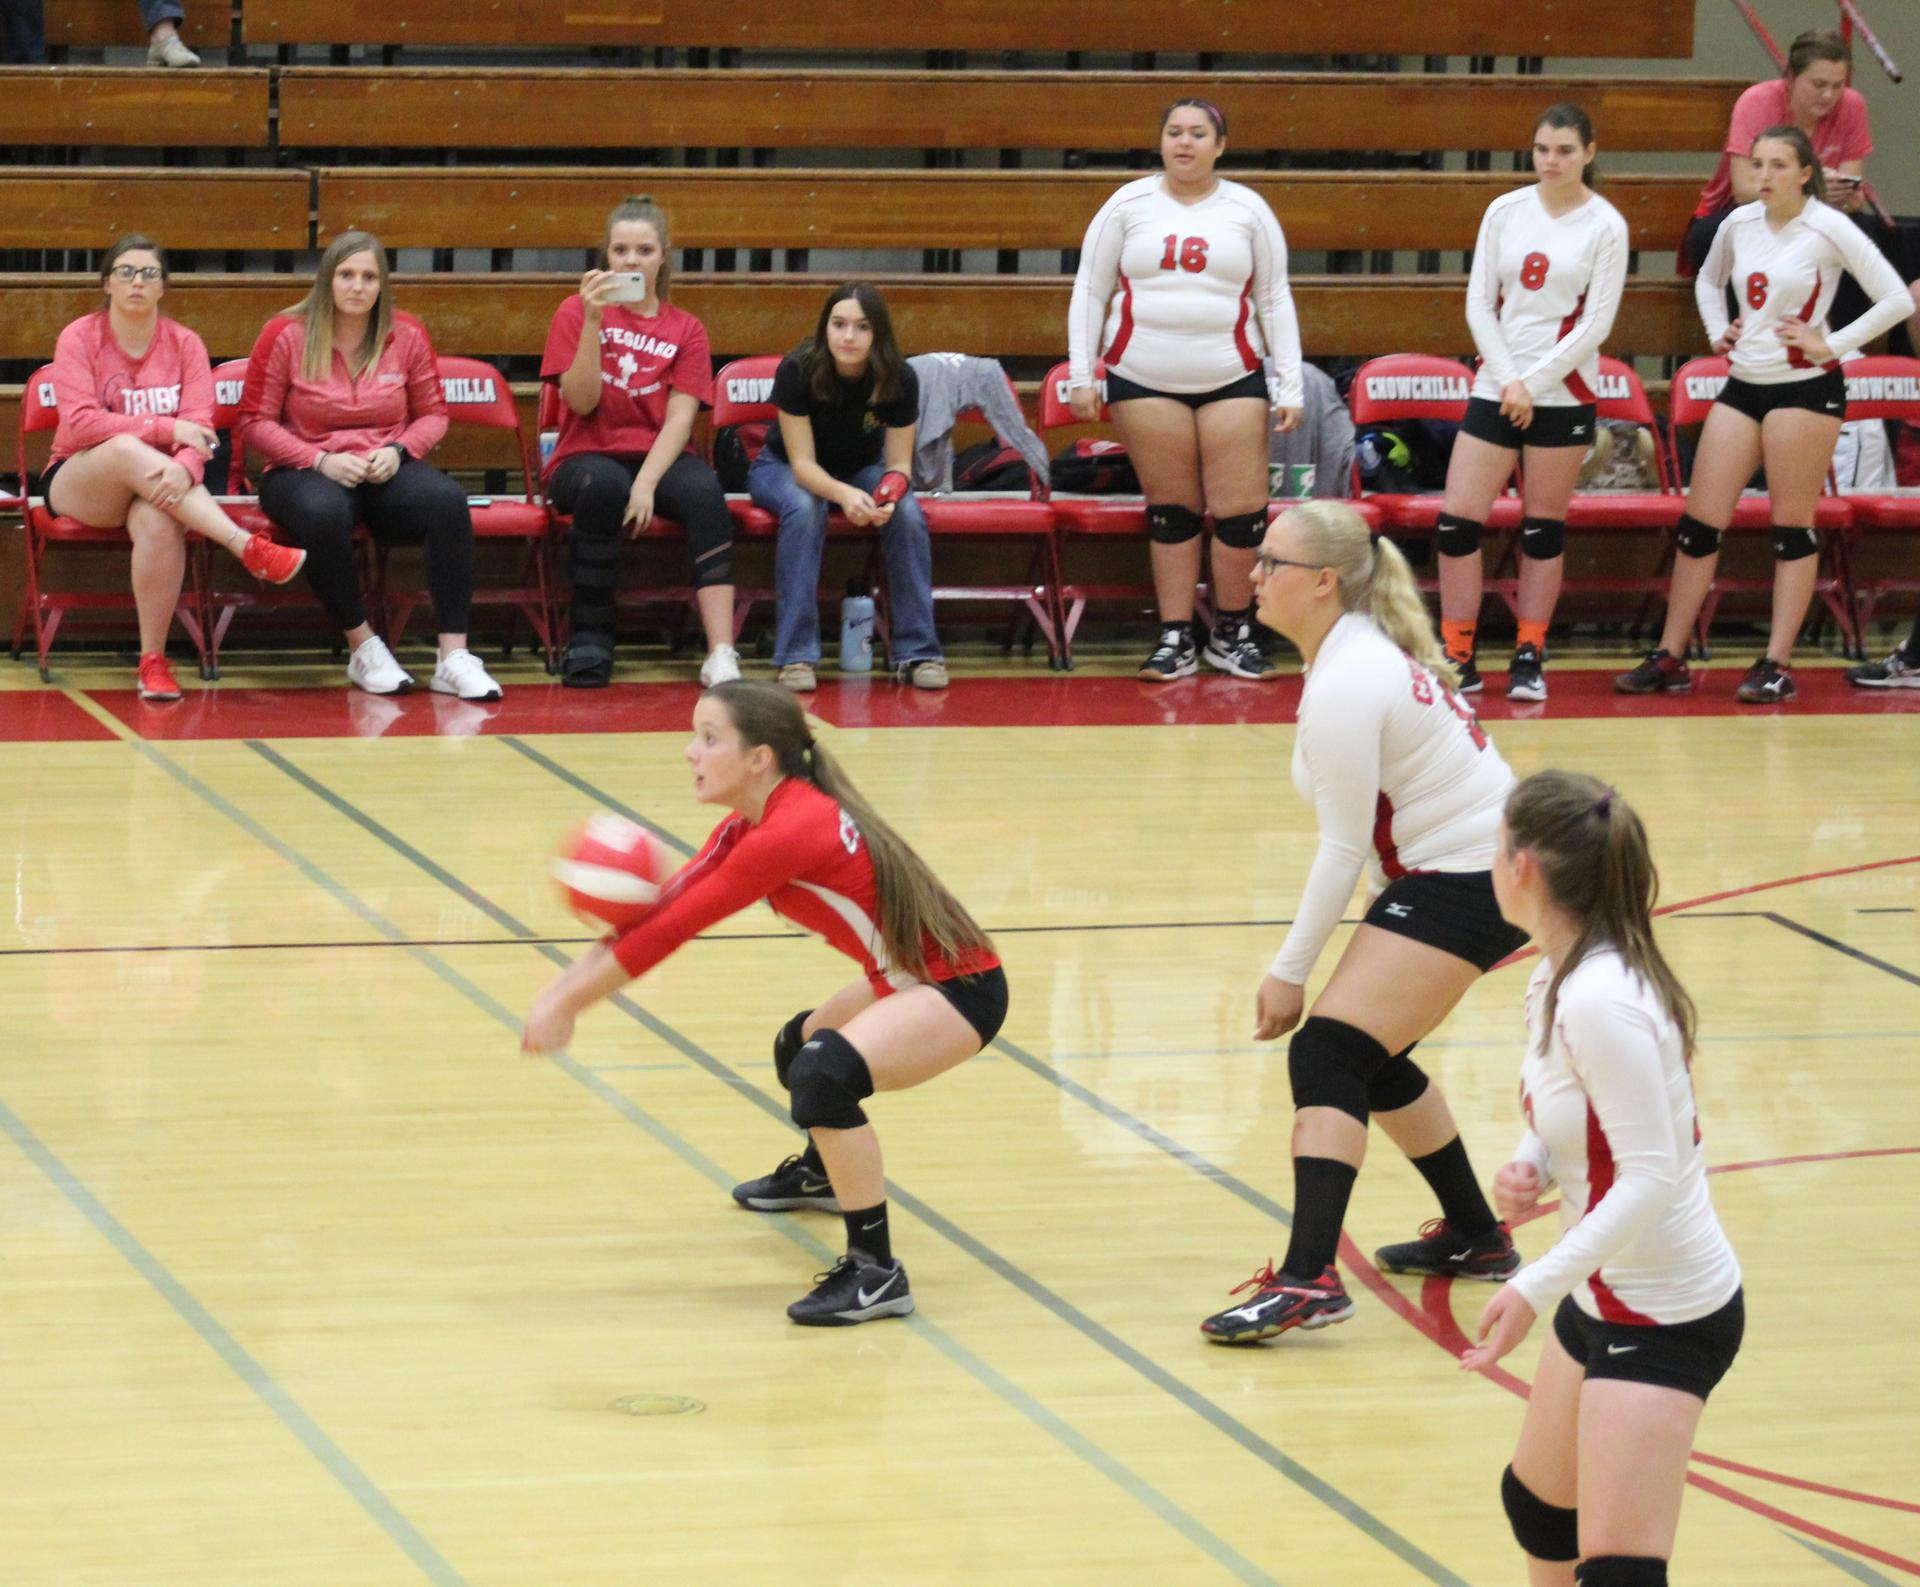 Junior Varsity girls playing volleyball against Washington Union